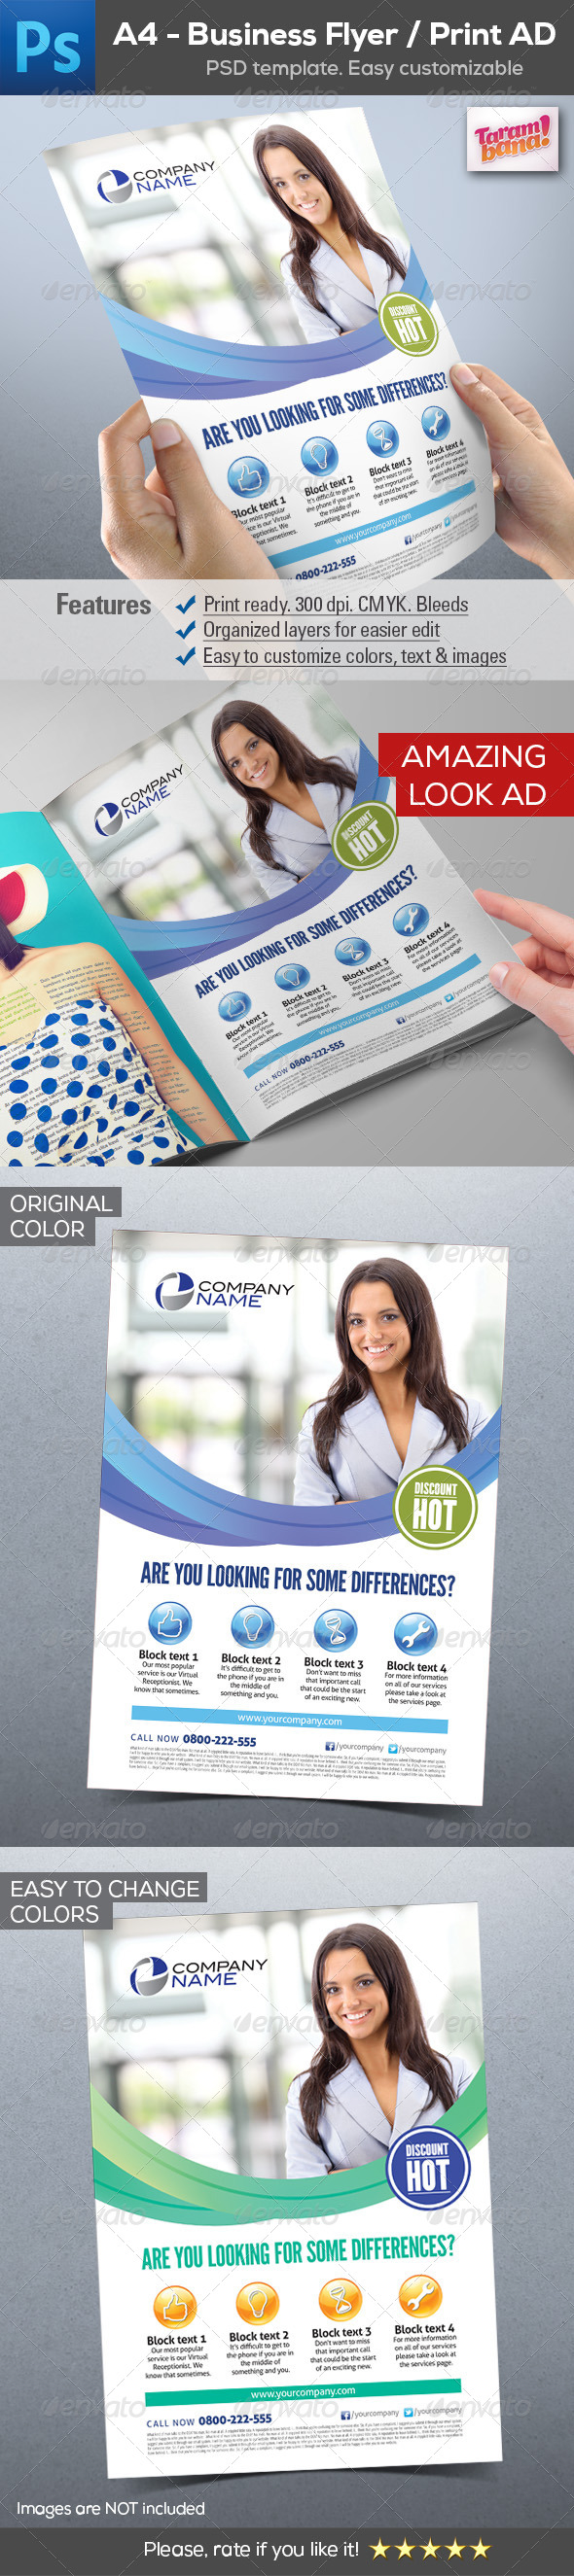 GraphicRiver A4 Business Flyer Print AD 8292108